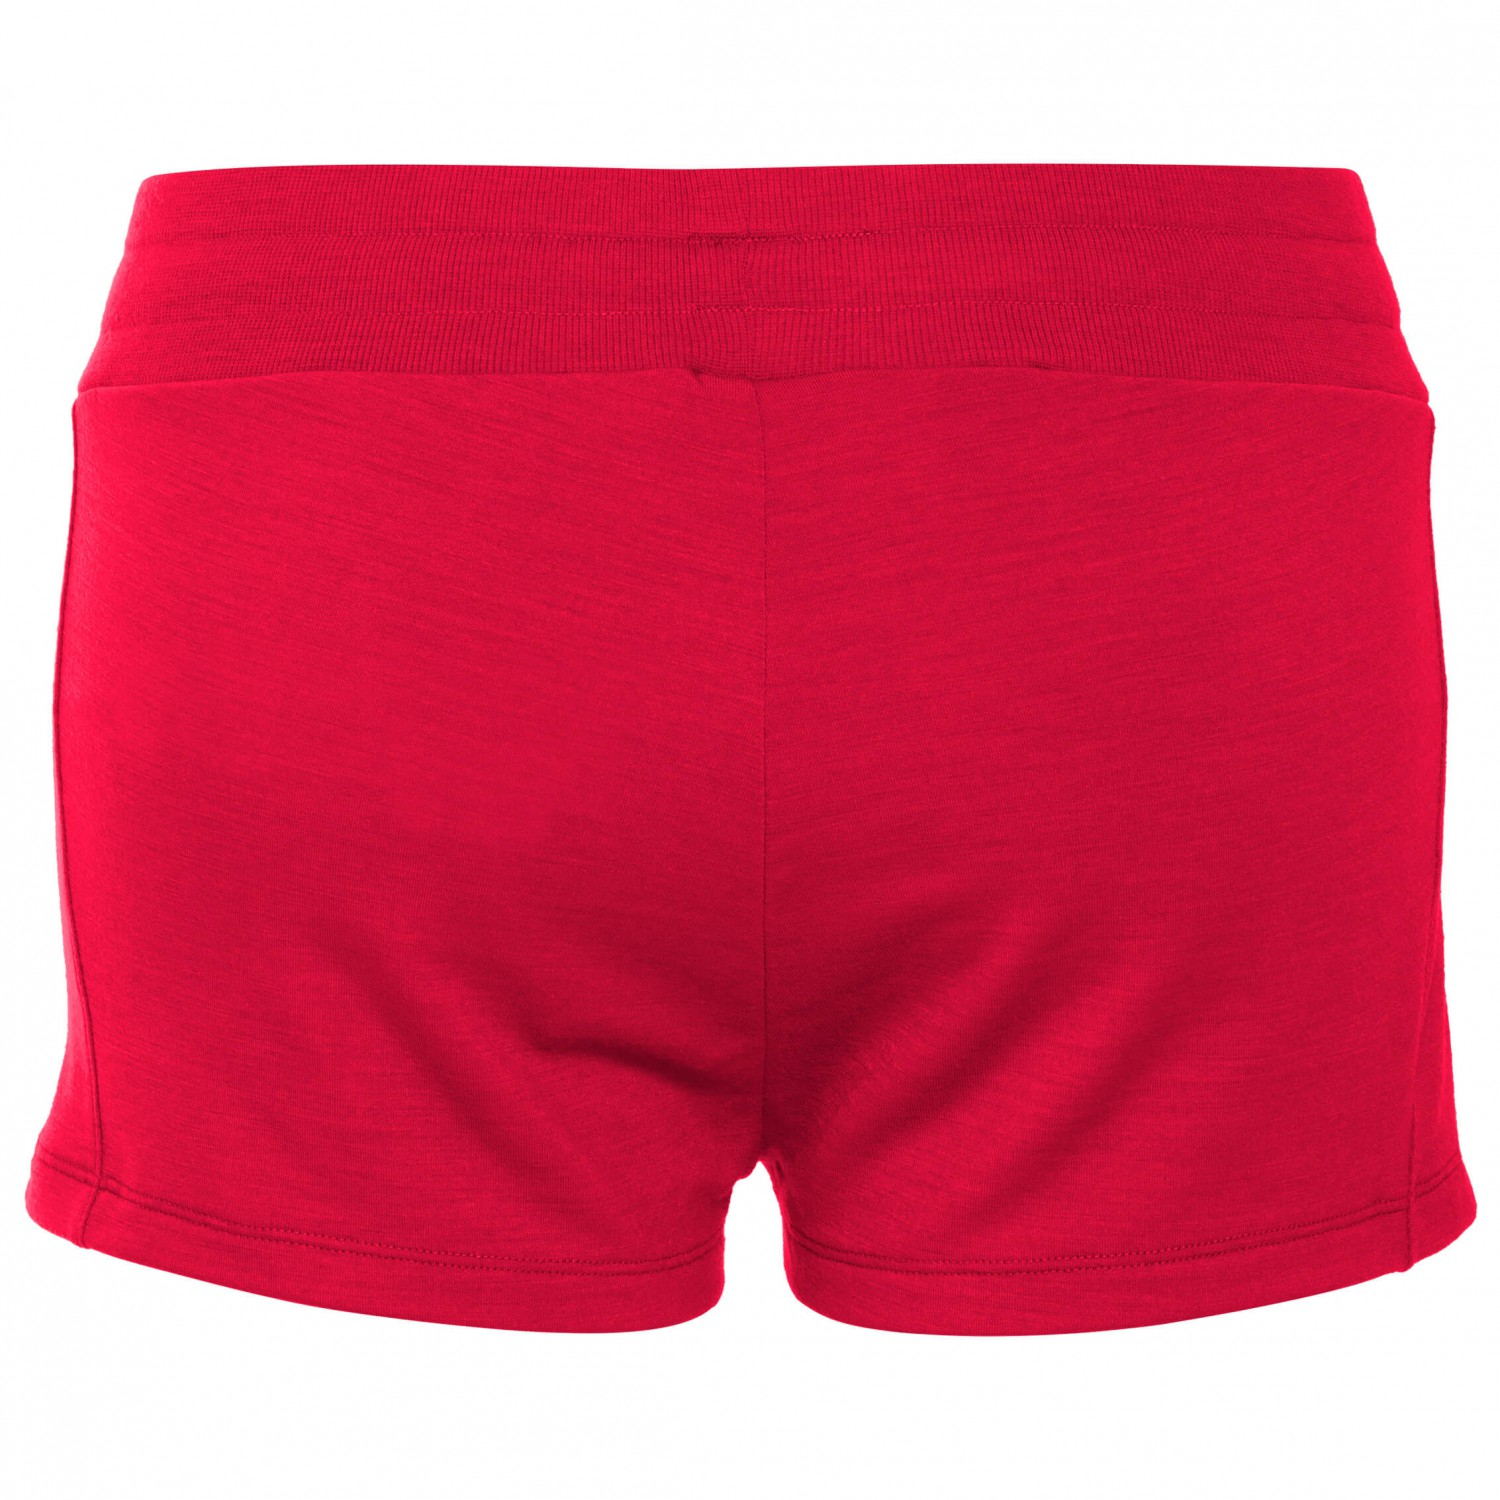 SuperNatural Tempo Short - Yoga Shorts Women's